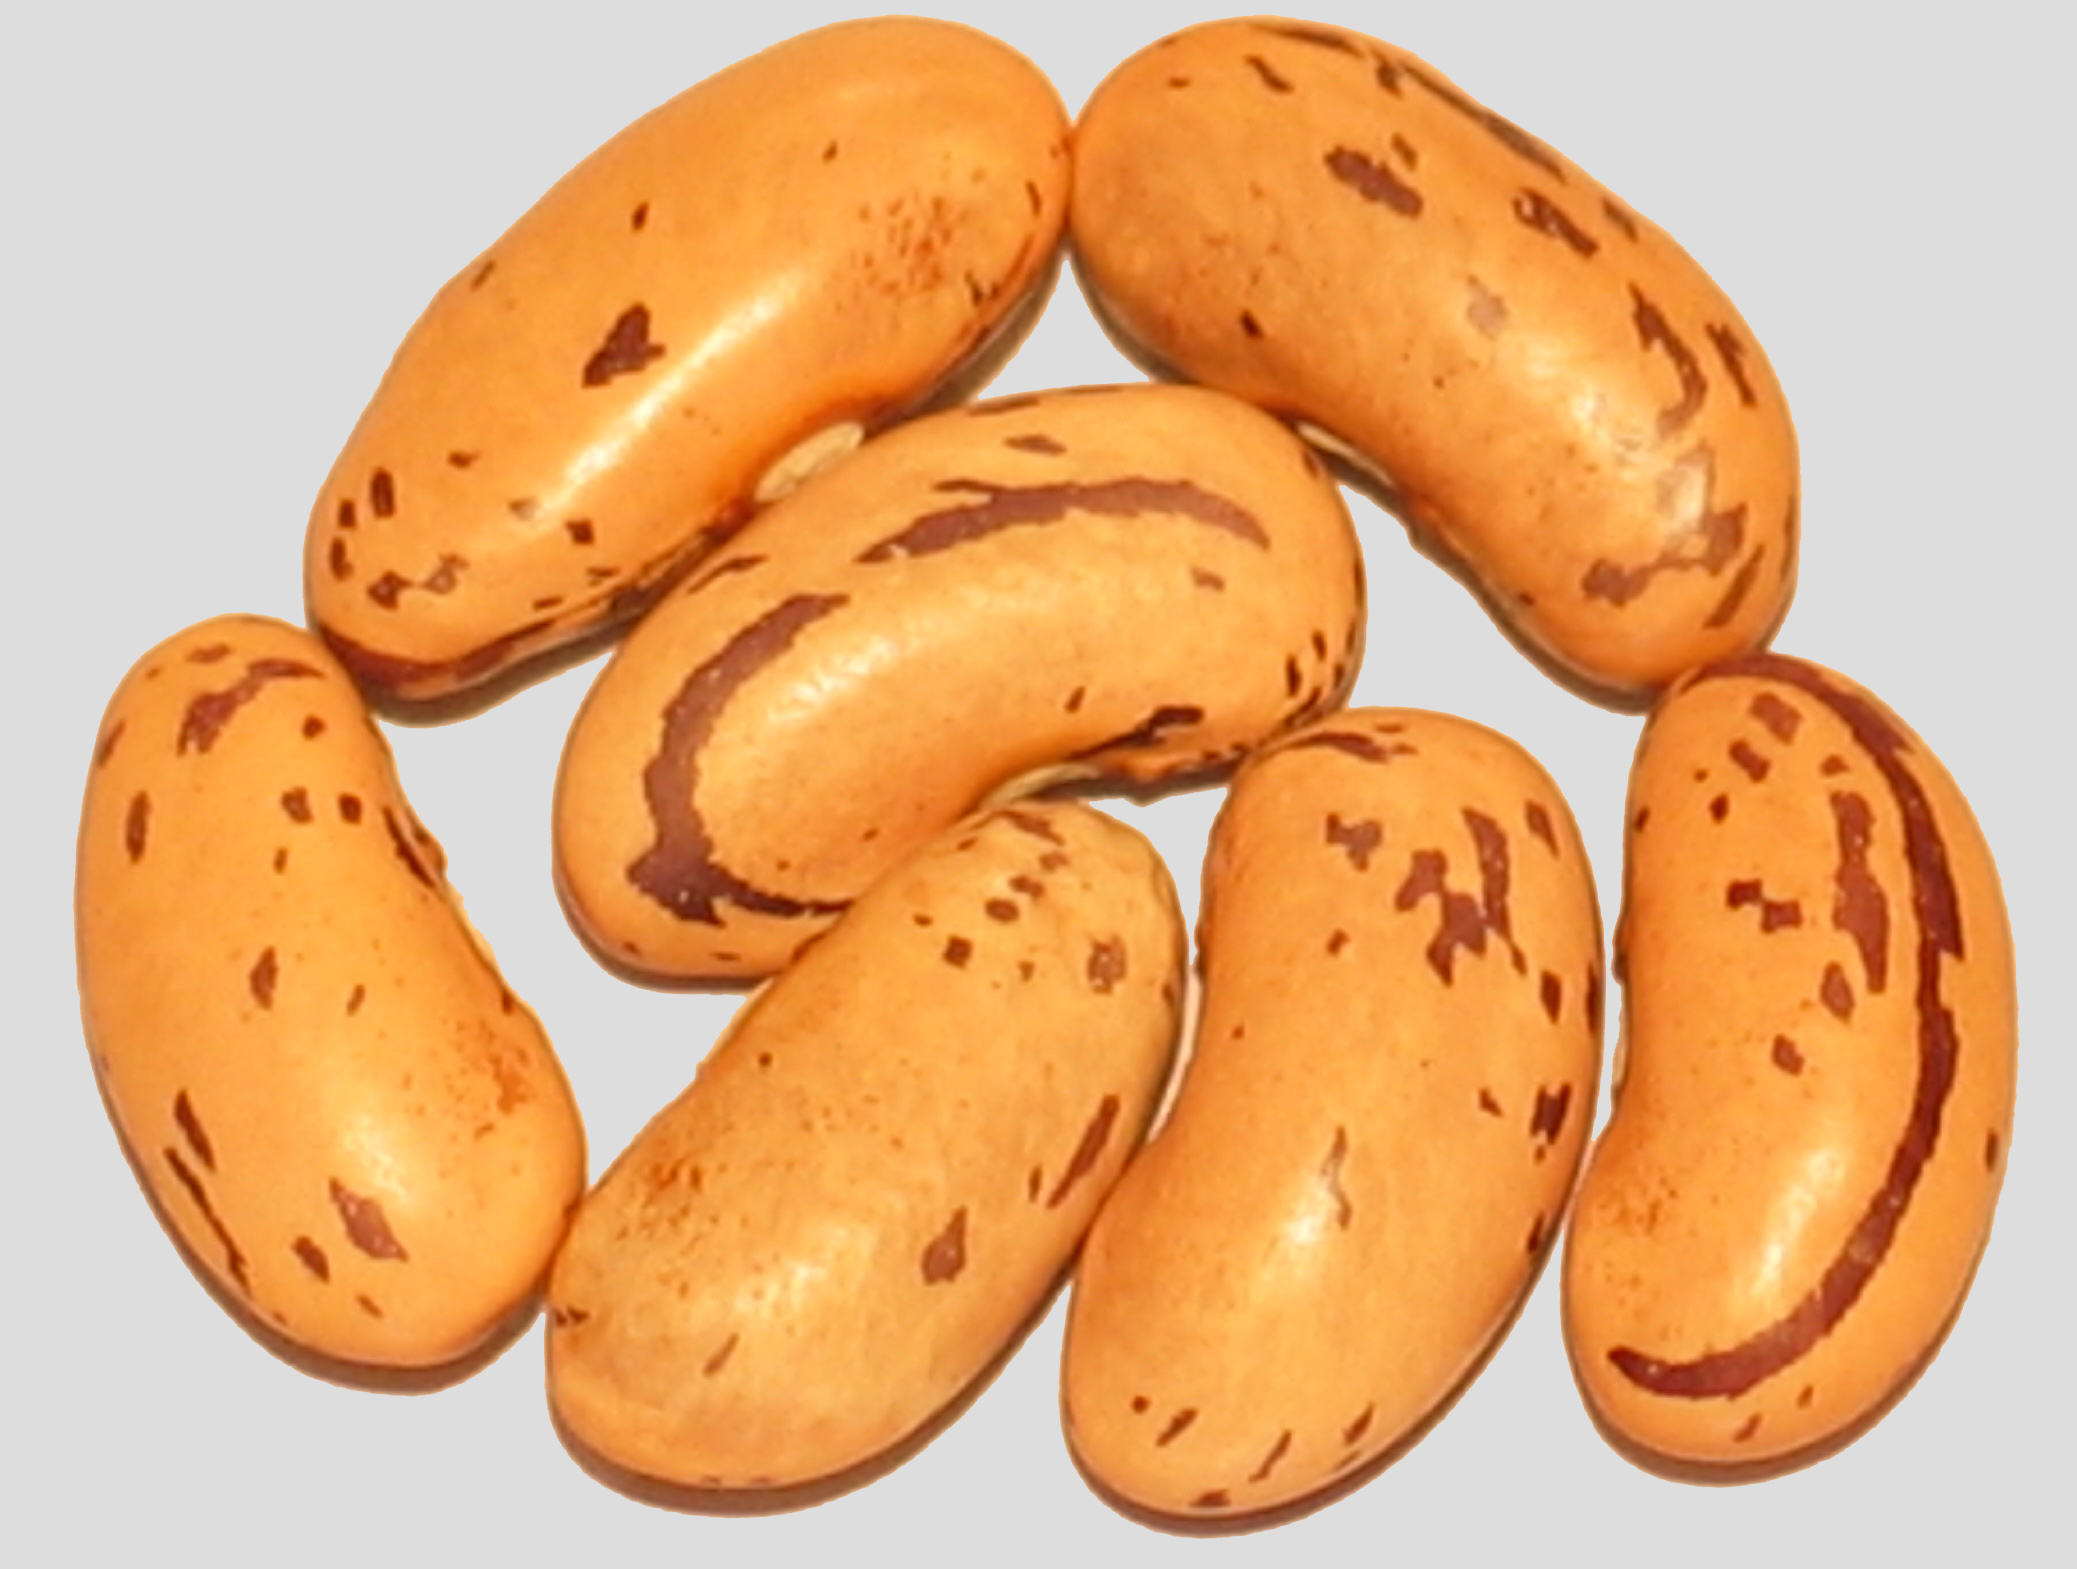 image of Feijao Catarino beans